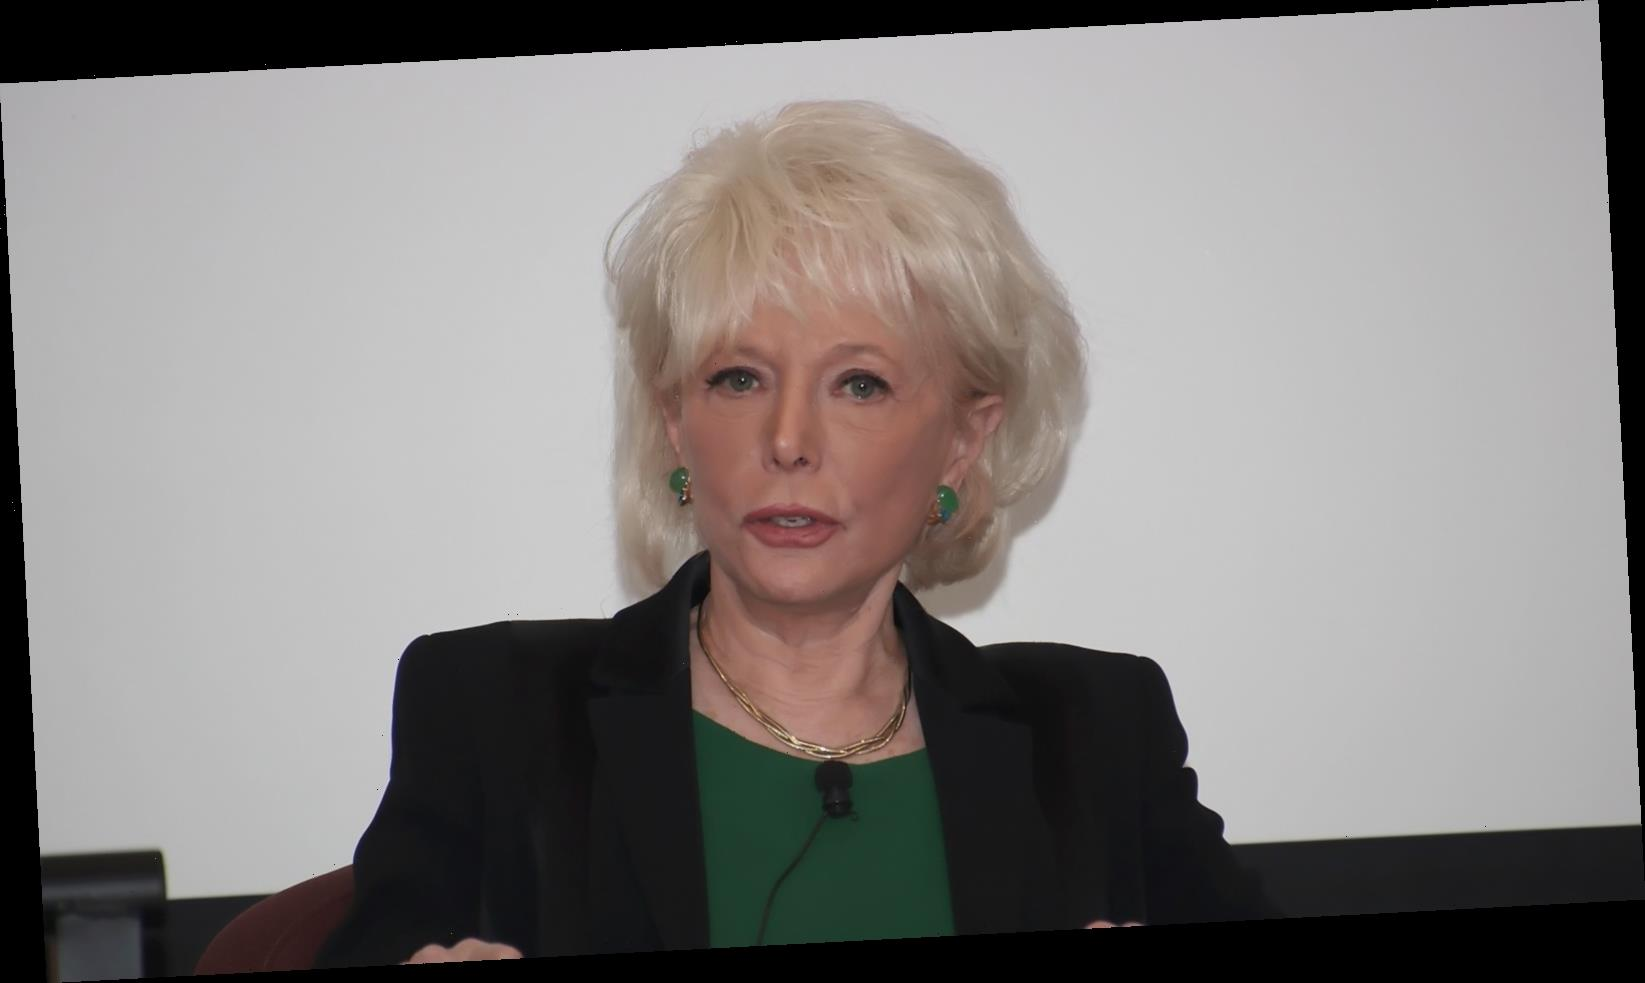 Lesley Stahl's Trump interview received a frightening response